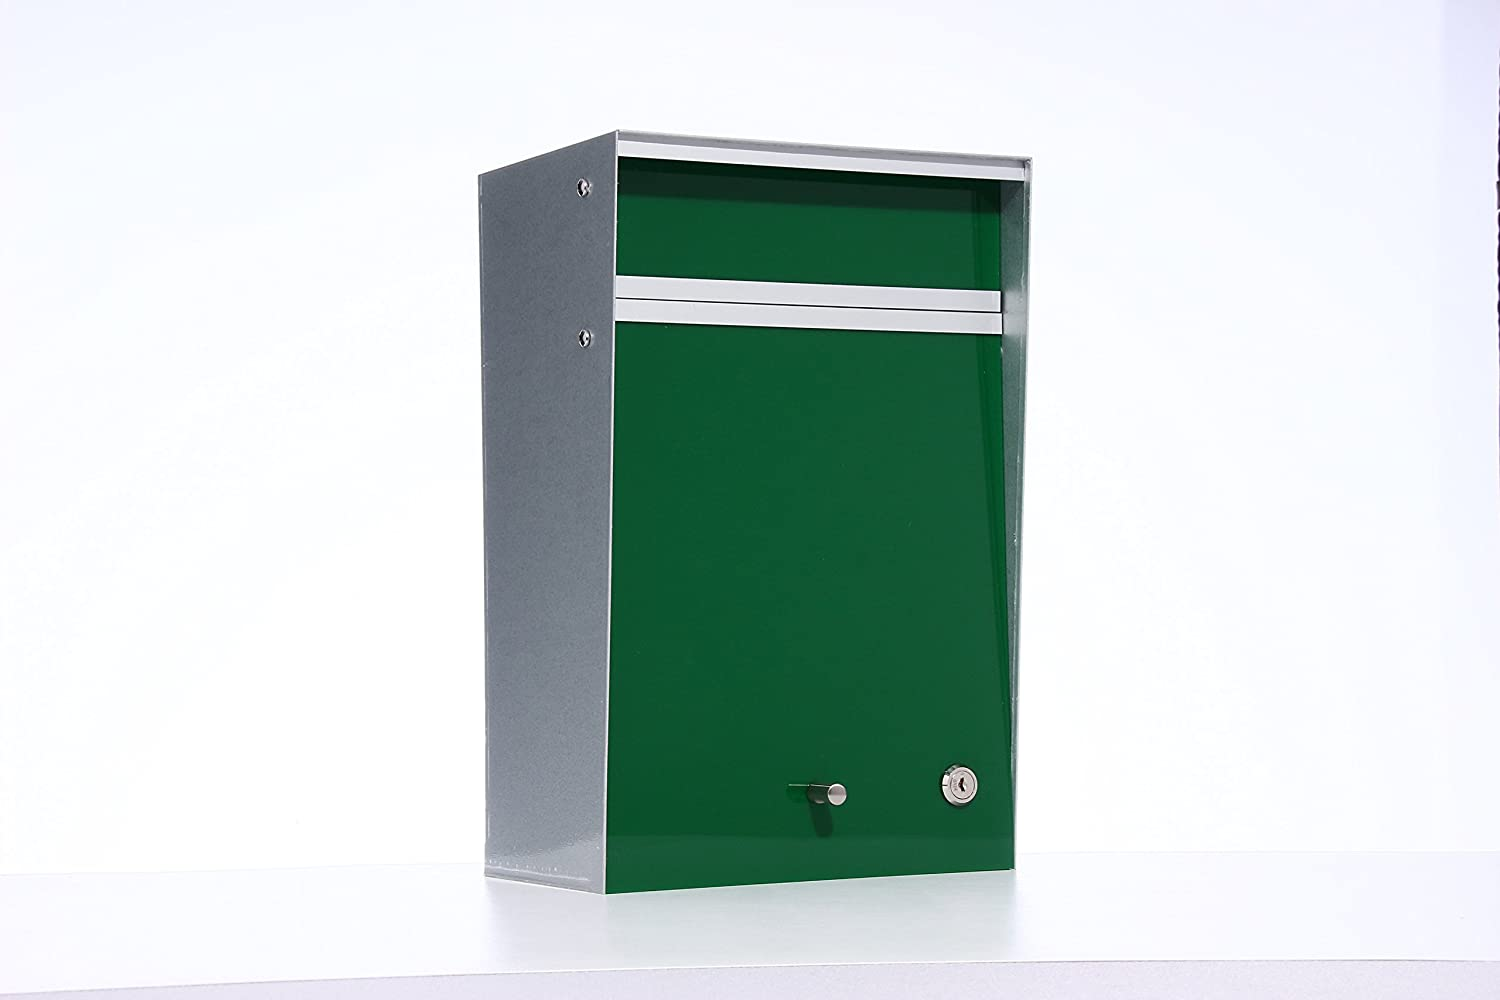 Box Design ポスト 郵便受け Wall Mounted  Green B00W6HVXCY 28080 Green Green